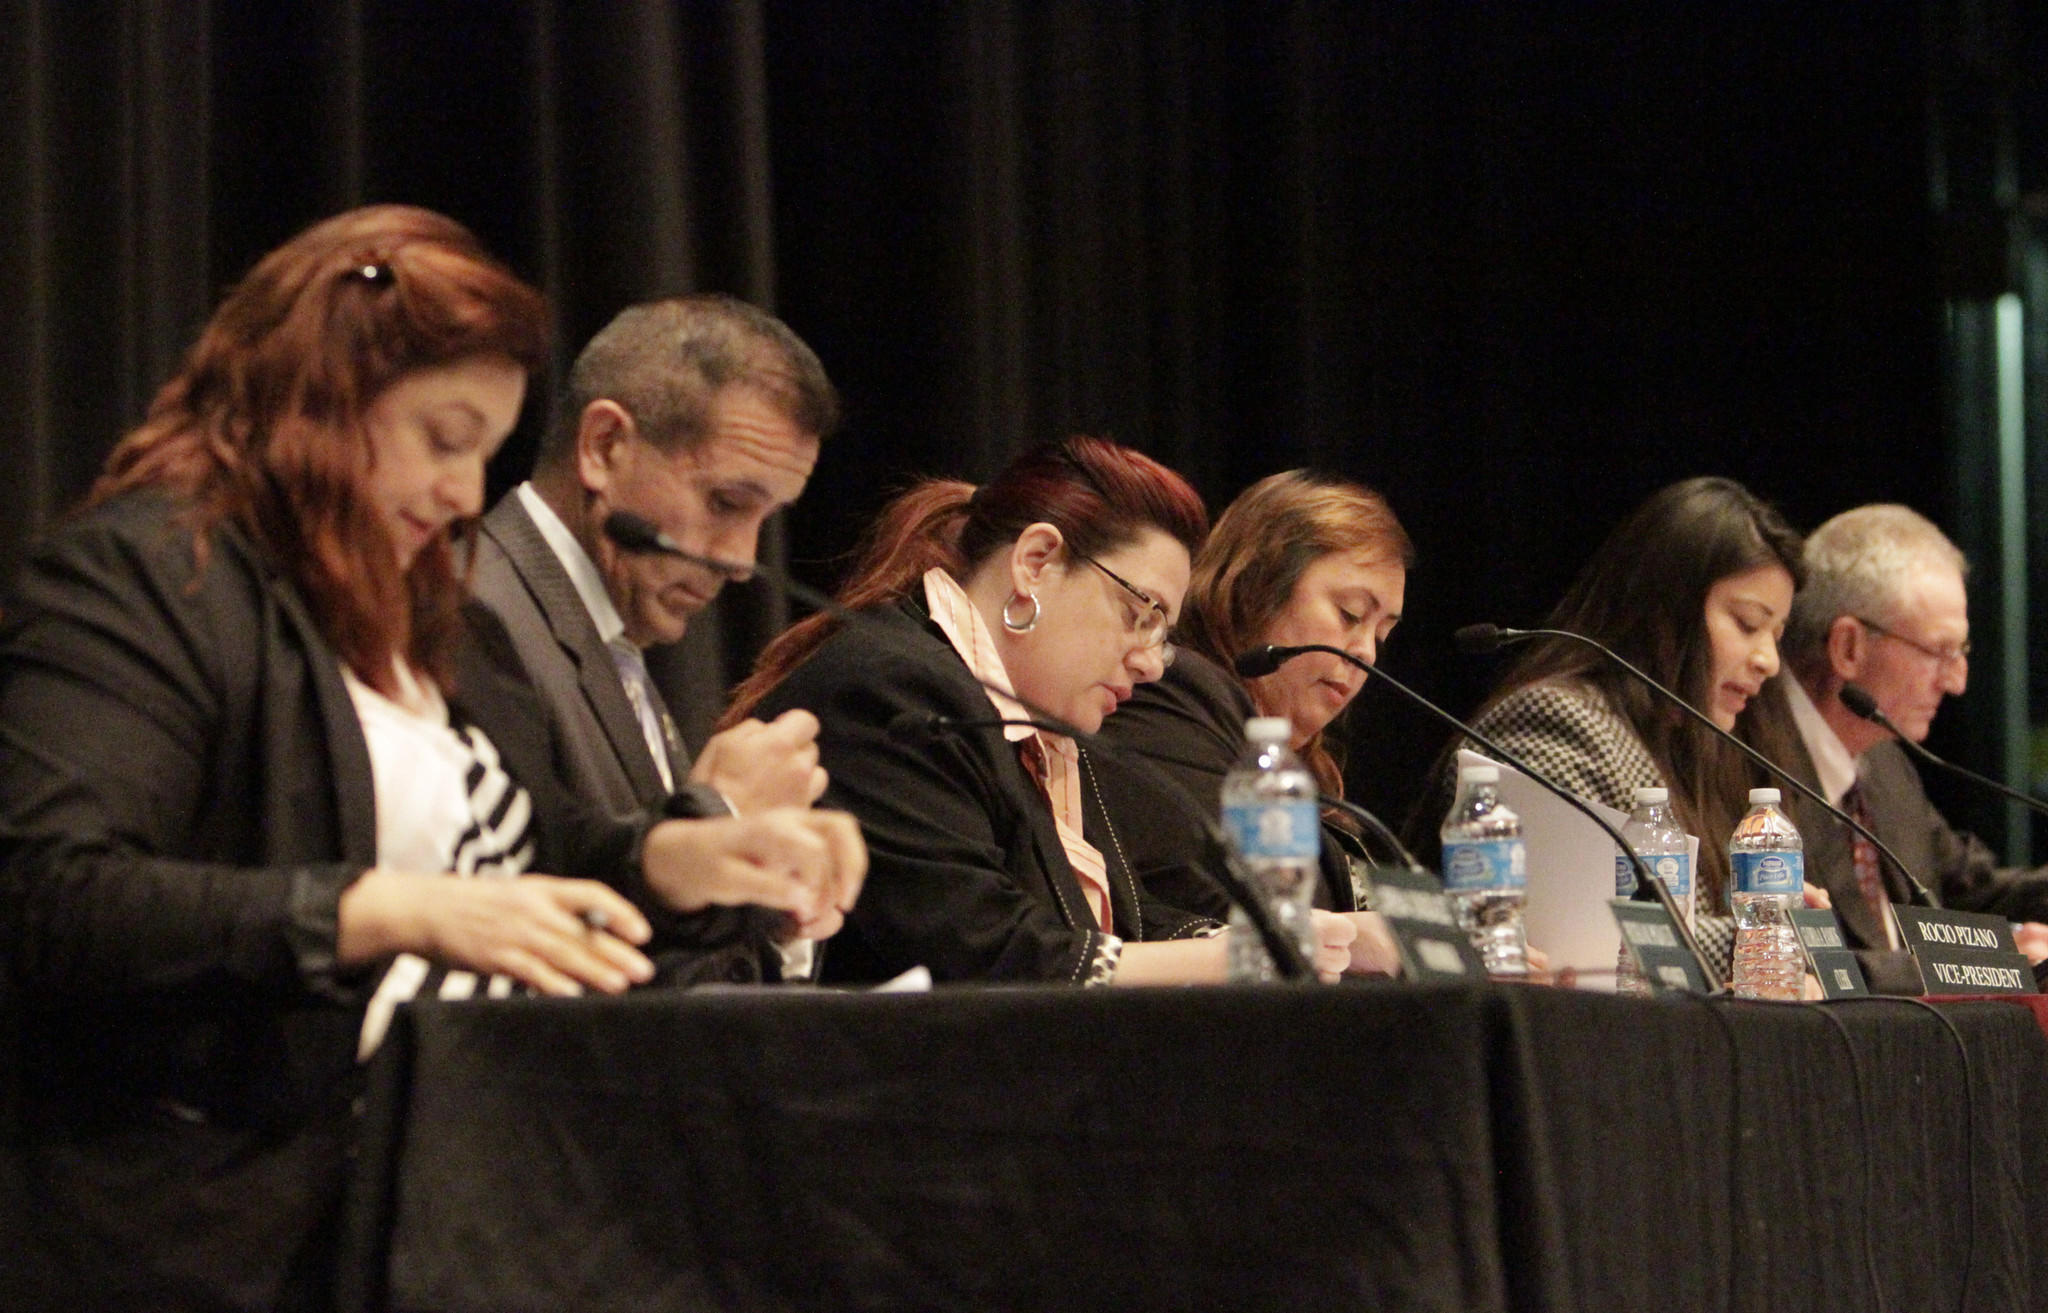 The embattled Centinela school board took steps Tuesday to restore community confidence that has eroded over disclosures about the superintendent's high salary. The school board president also announced the FBI was looking into the matter.